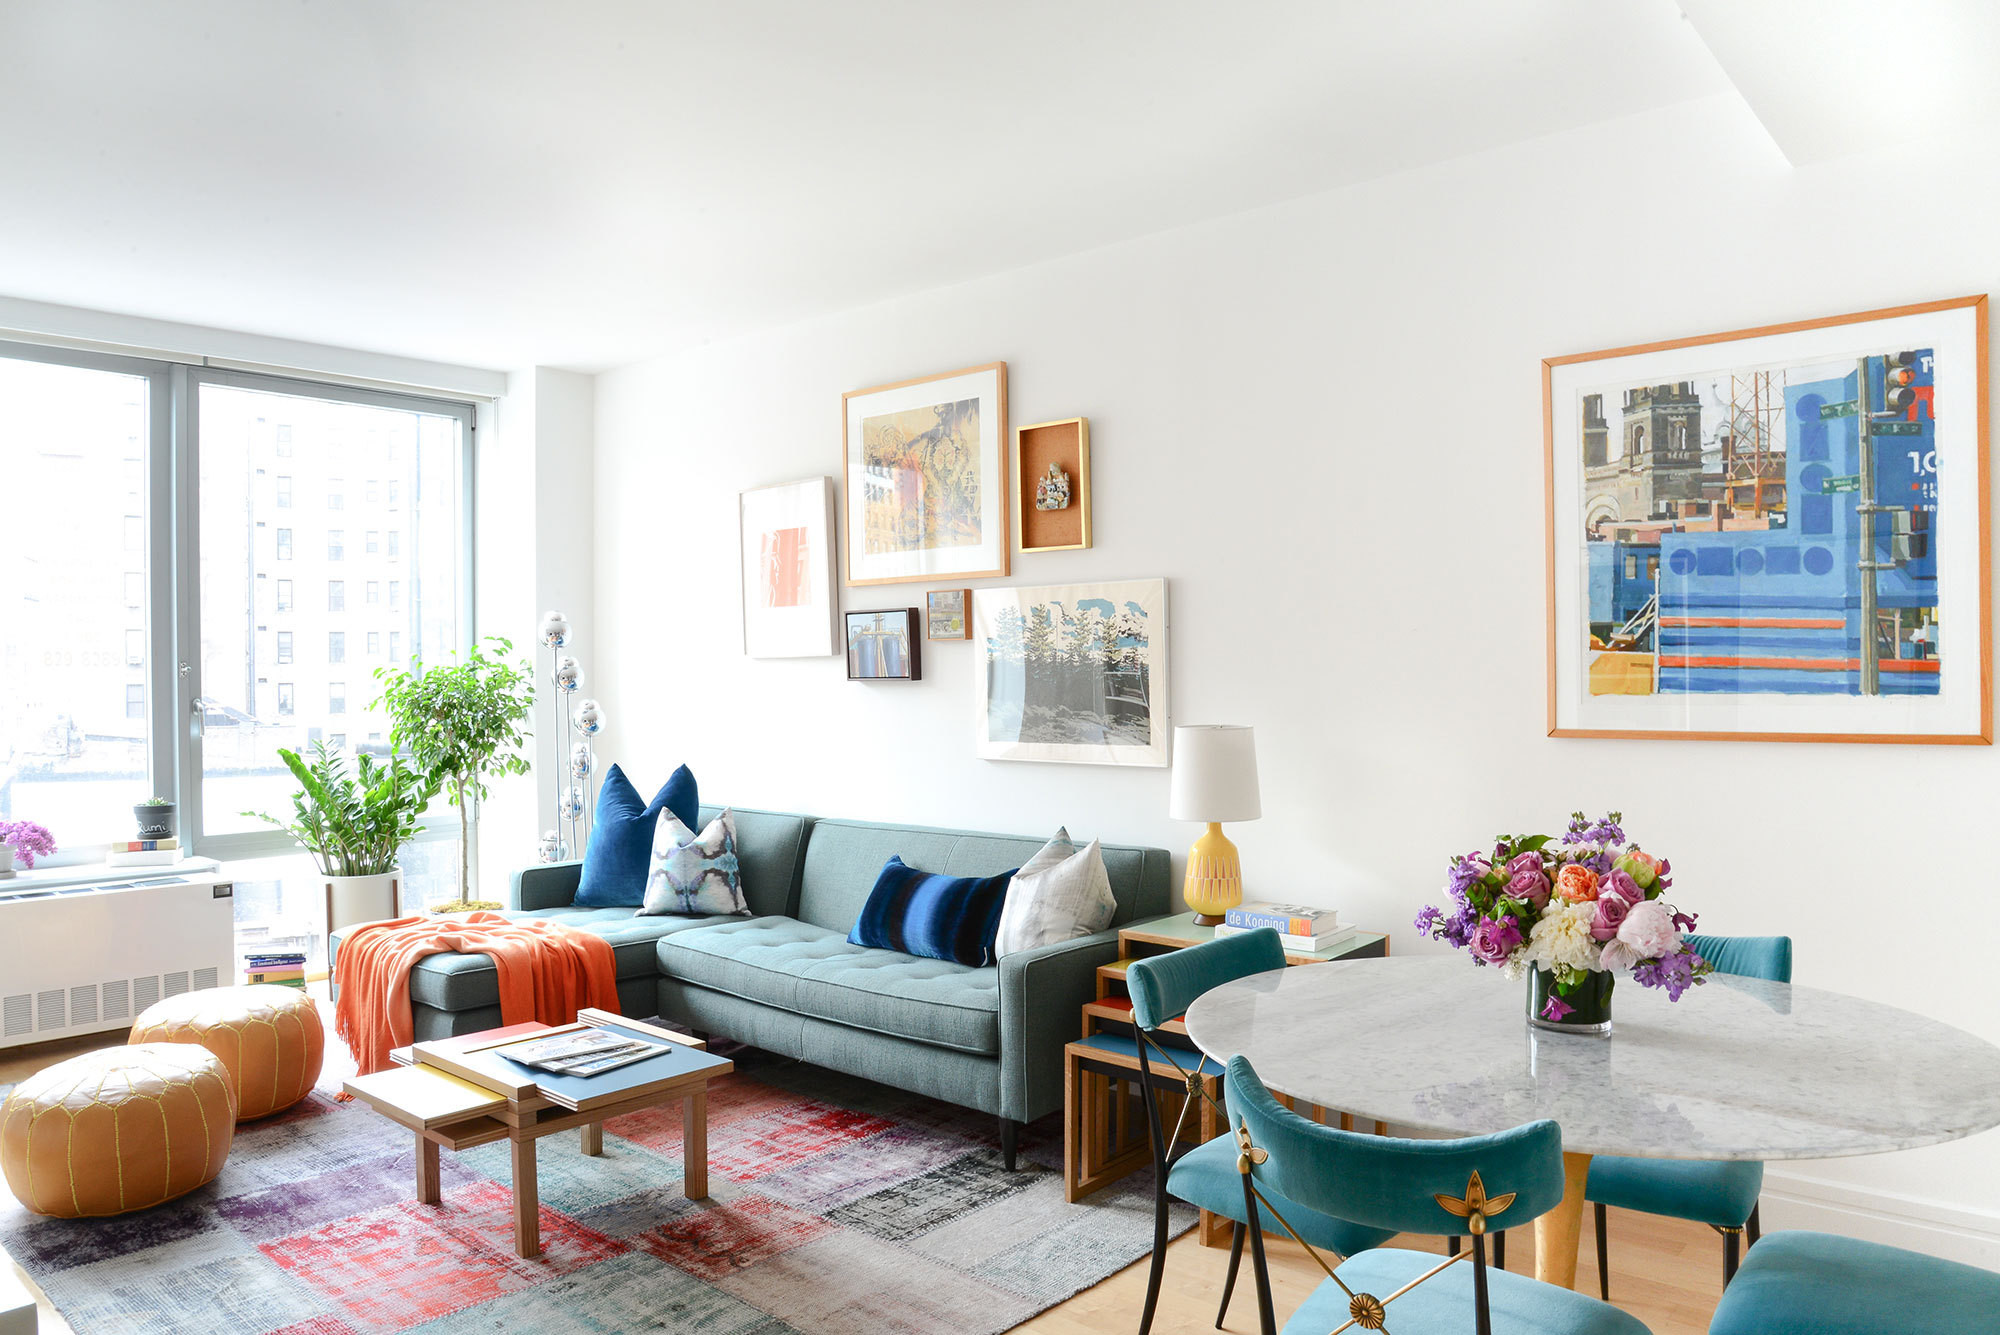 Homepolish designer Matthew Cane incorporated color and texture in a cheerful second home in New York City for a New Jersey couple.